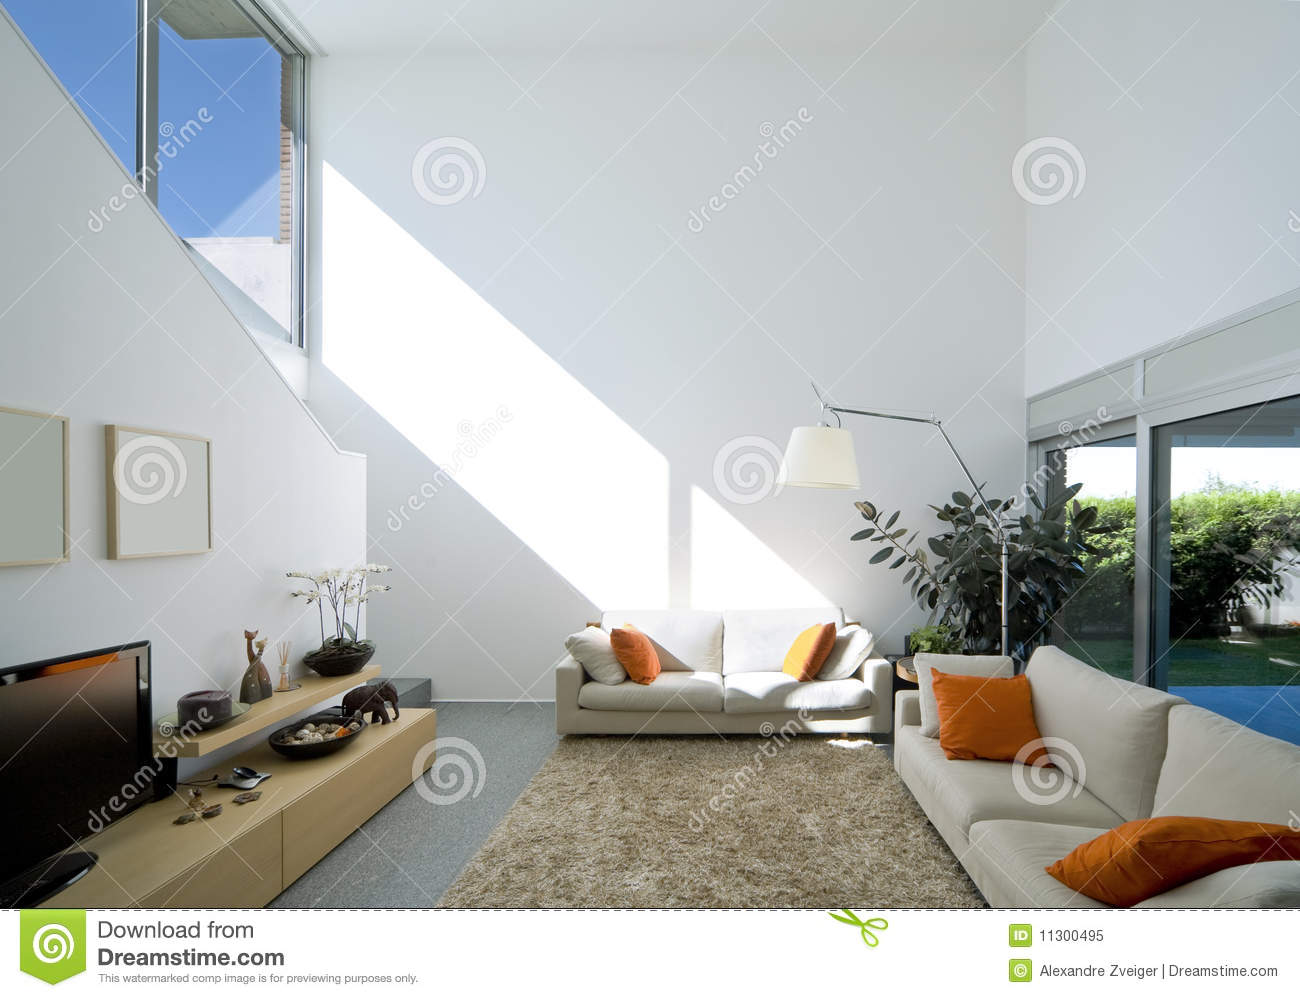 Stock Illustration Set Colorful Vector Interior Design House Rooms Furniture Icons Living Room Bedroom Kitchen Home Office Flat Style Image66740450 additionally Front Elevation Modern House additionally Modern House additionally 1200 Sq Ft House Plans Modern 3d together with Narrow House. on 3d house plans 4 bedroom